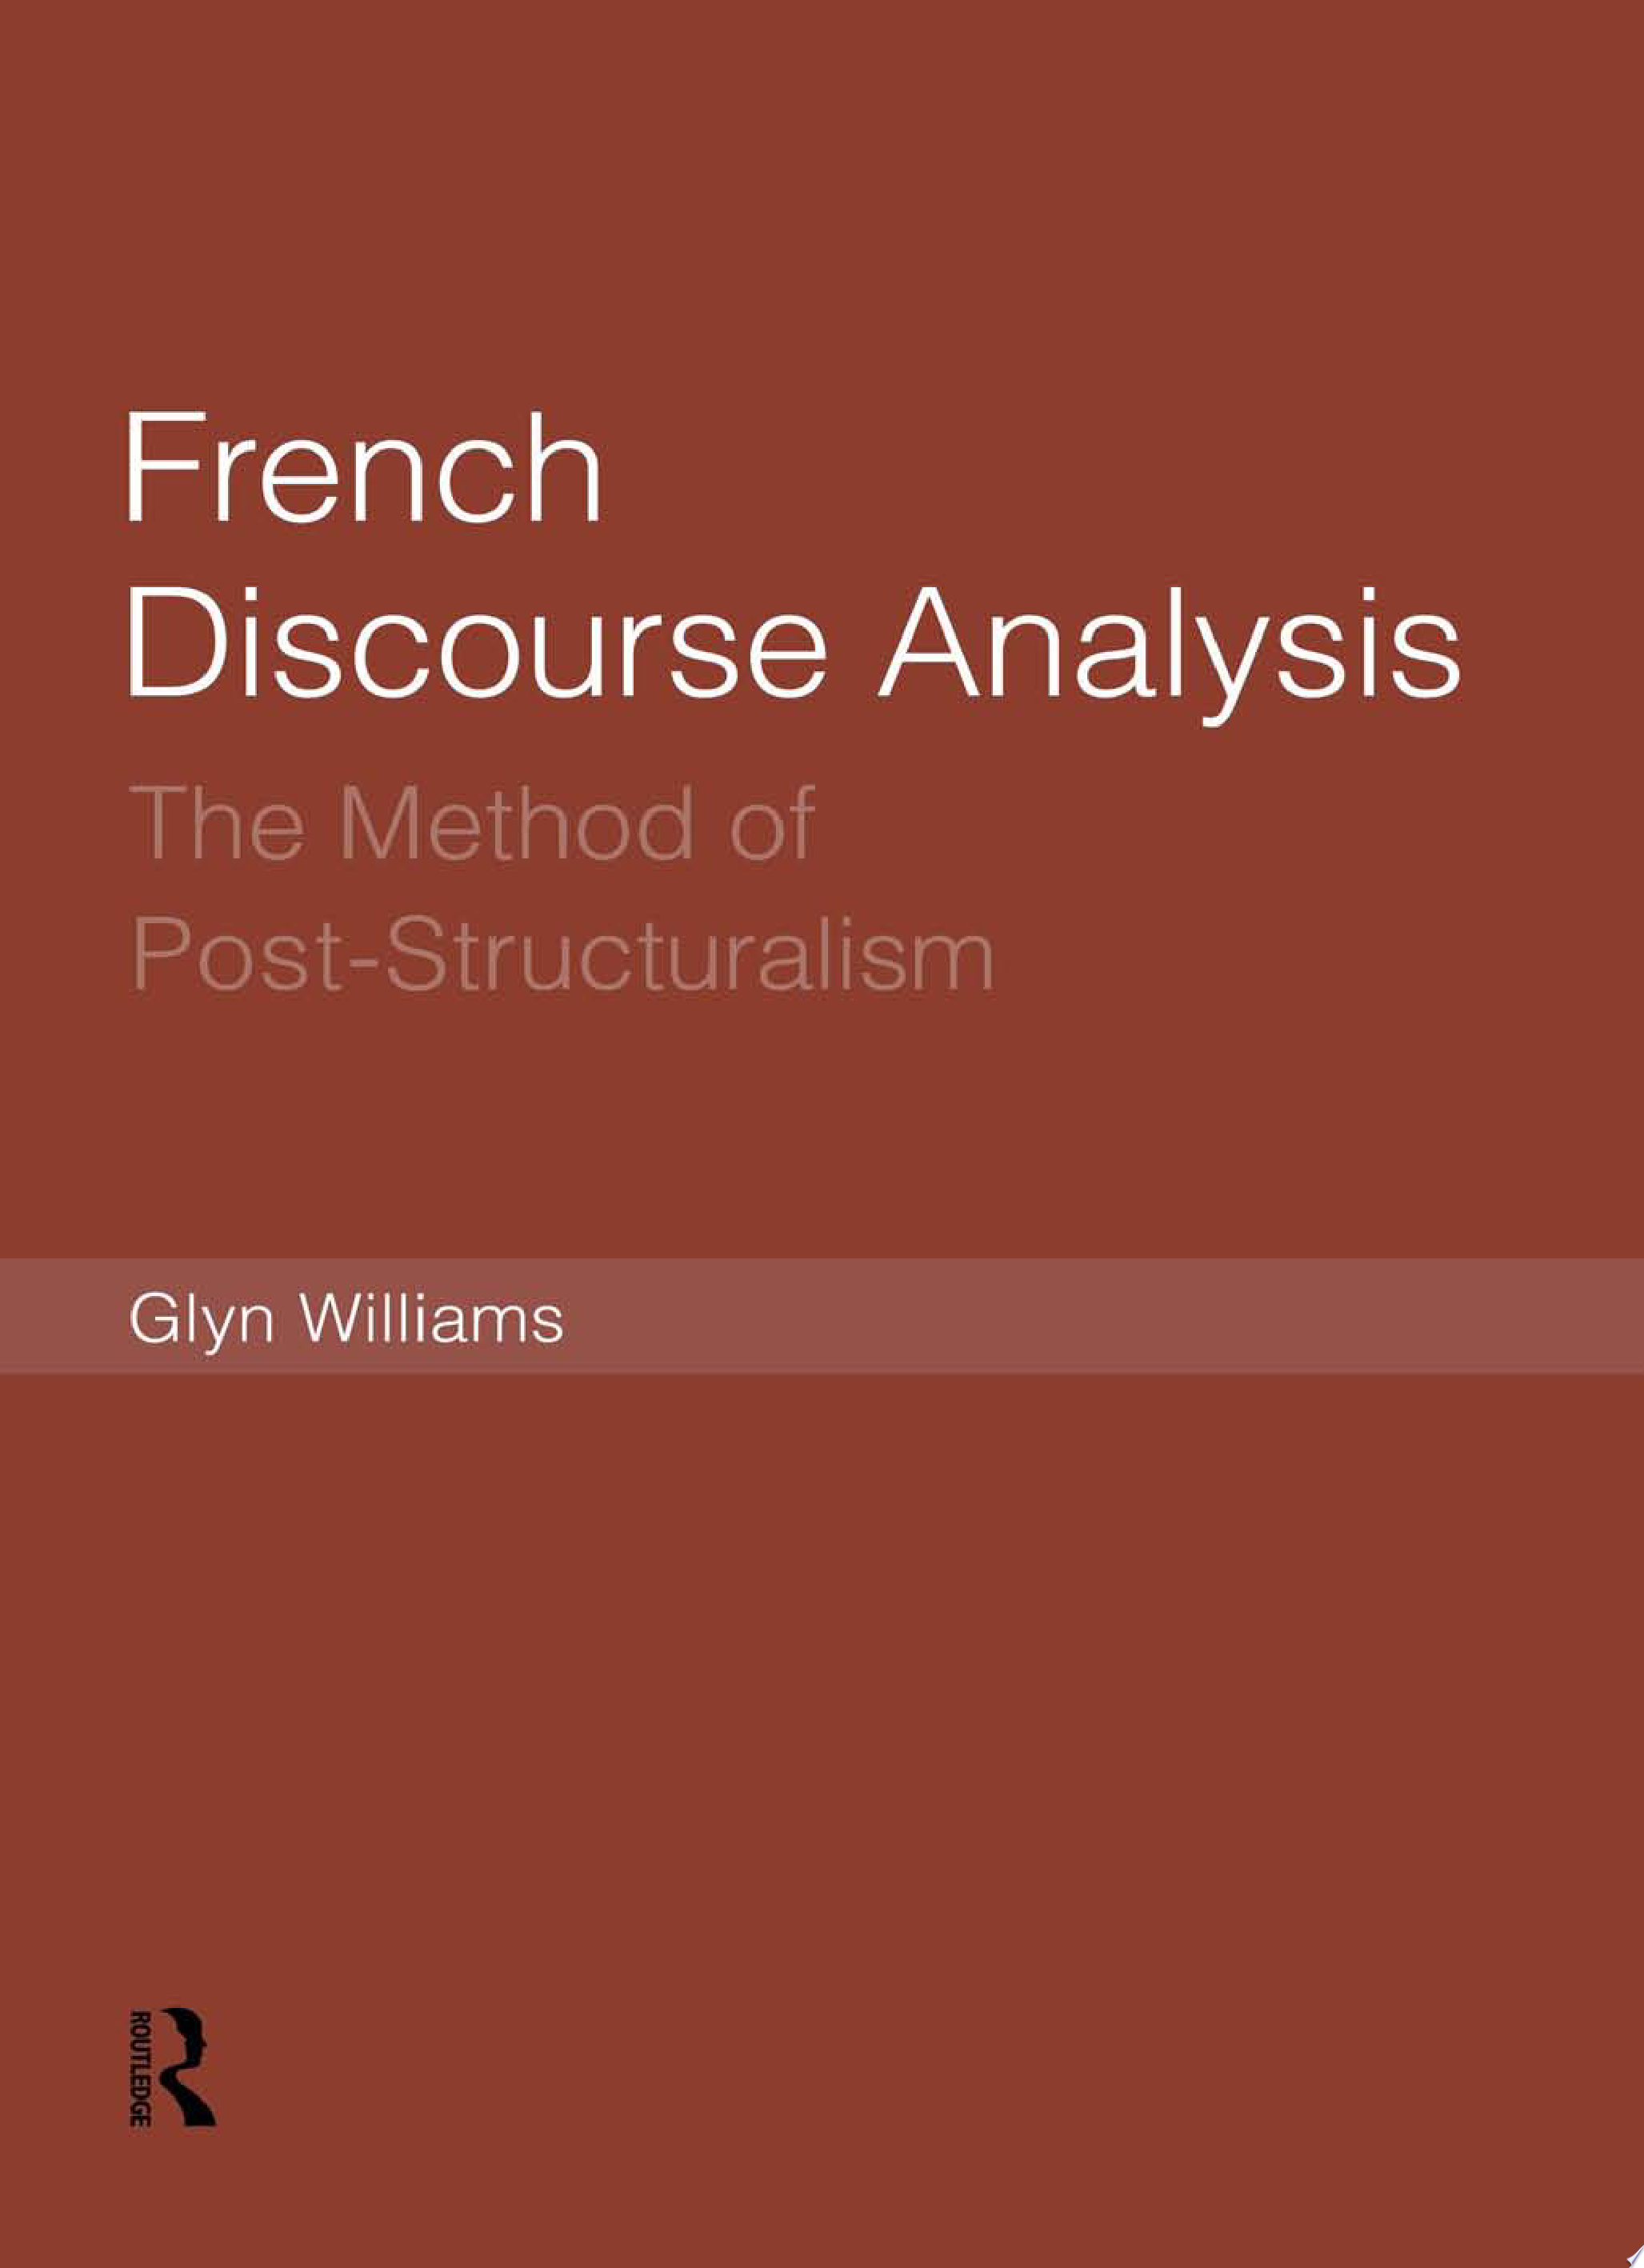 French Discourse Analysis